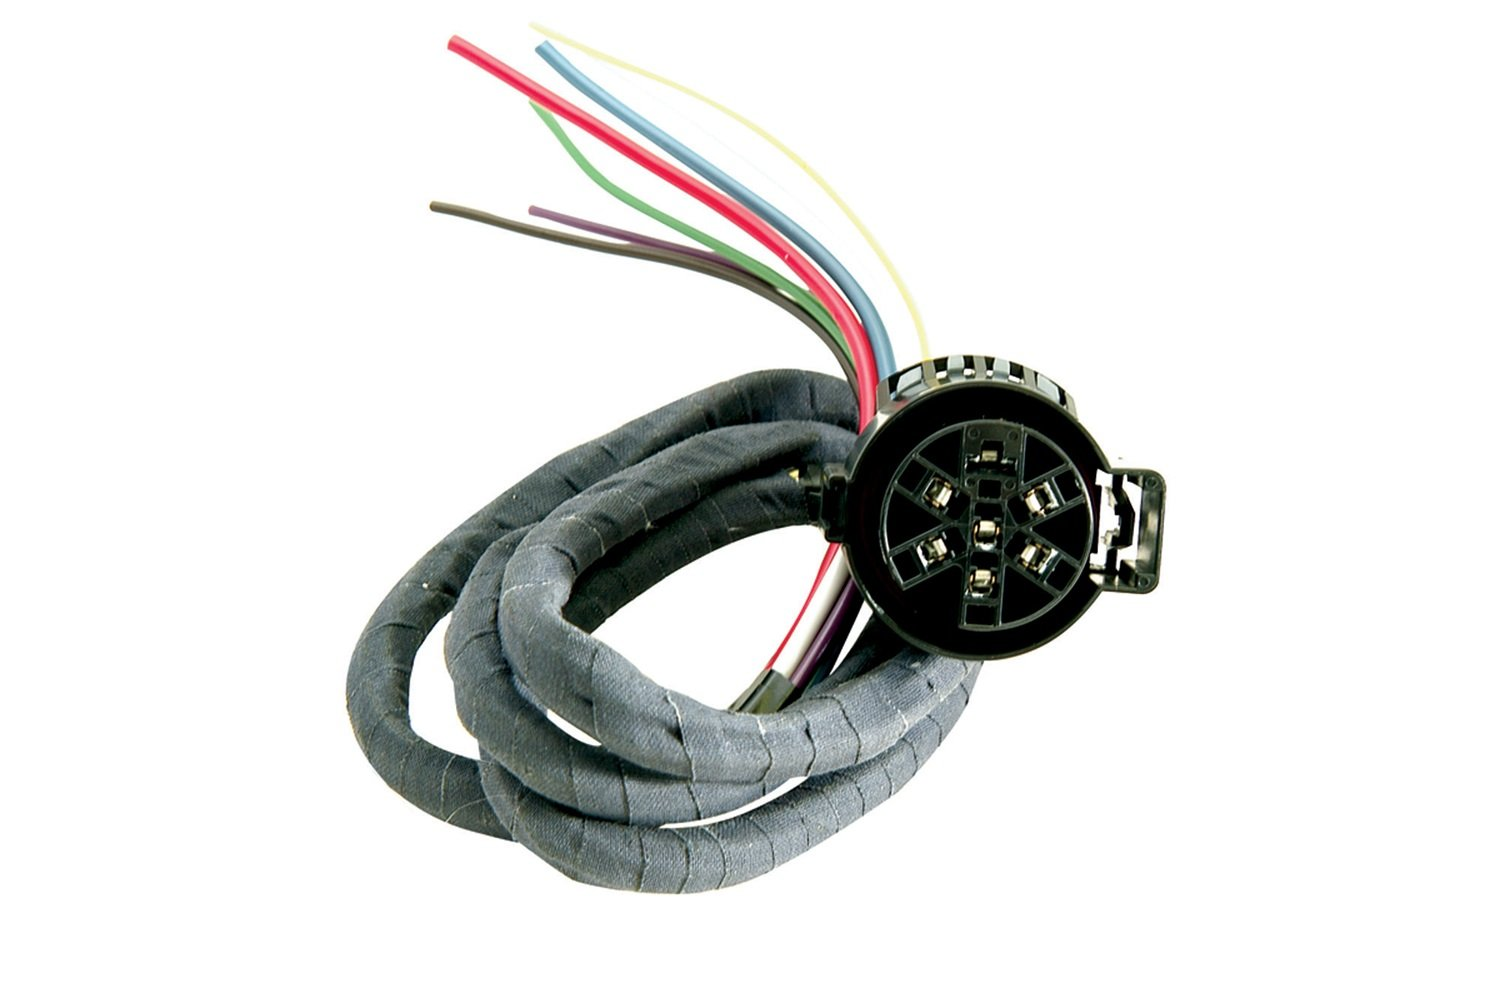 619JgDjQ1WL._SL1500_ amazon com hopkins 40985 universal multi tow harness connector universal wiring harness connector at reclaimingppi.co